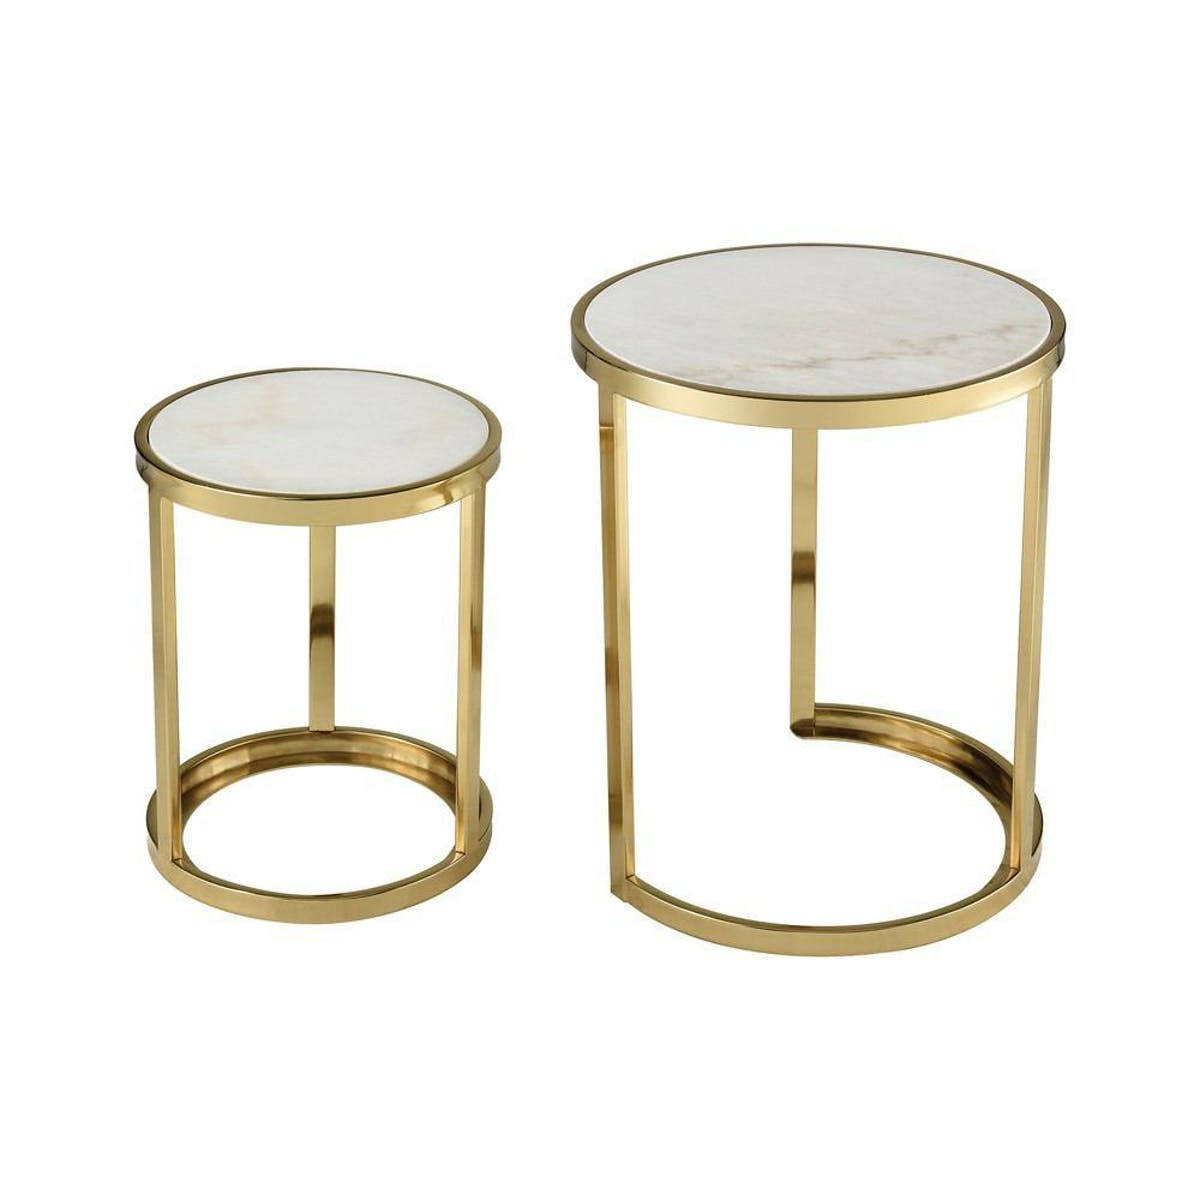 sterling industries trimalchio gold plated accent table set timber trestle legs pool umbrellas bunnings ikea coffee and end tables nautical bathroom sconces small folding tray